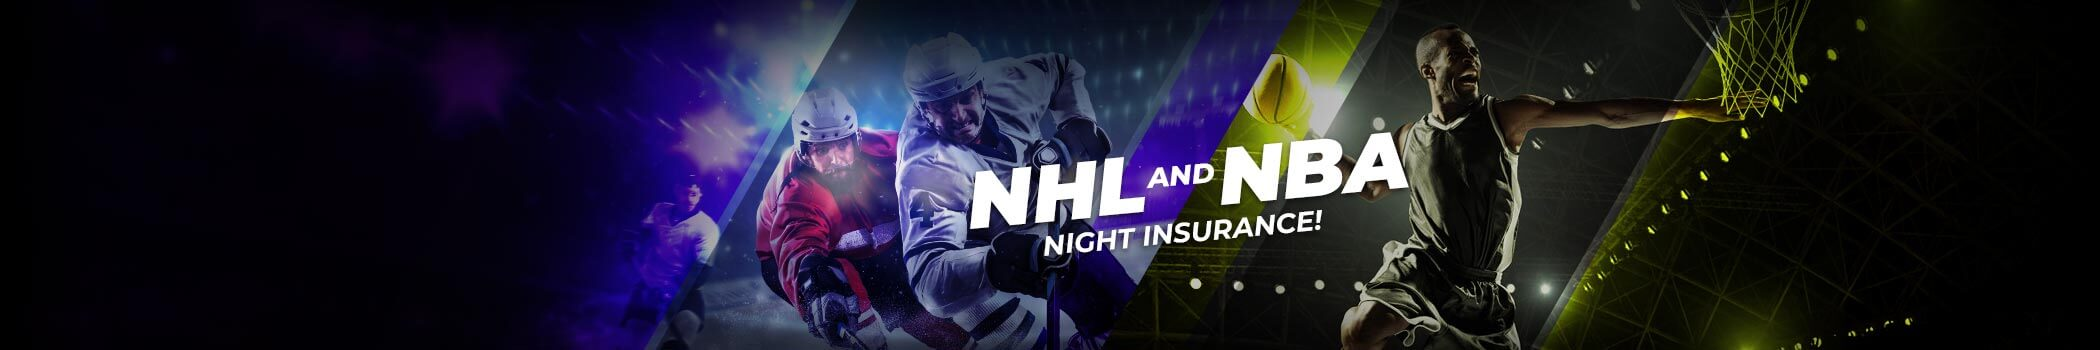 The NHL and NBA 4-fold fever